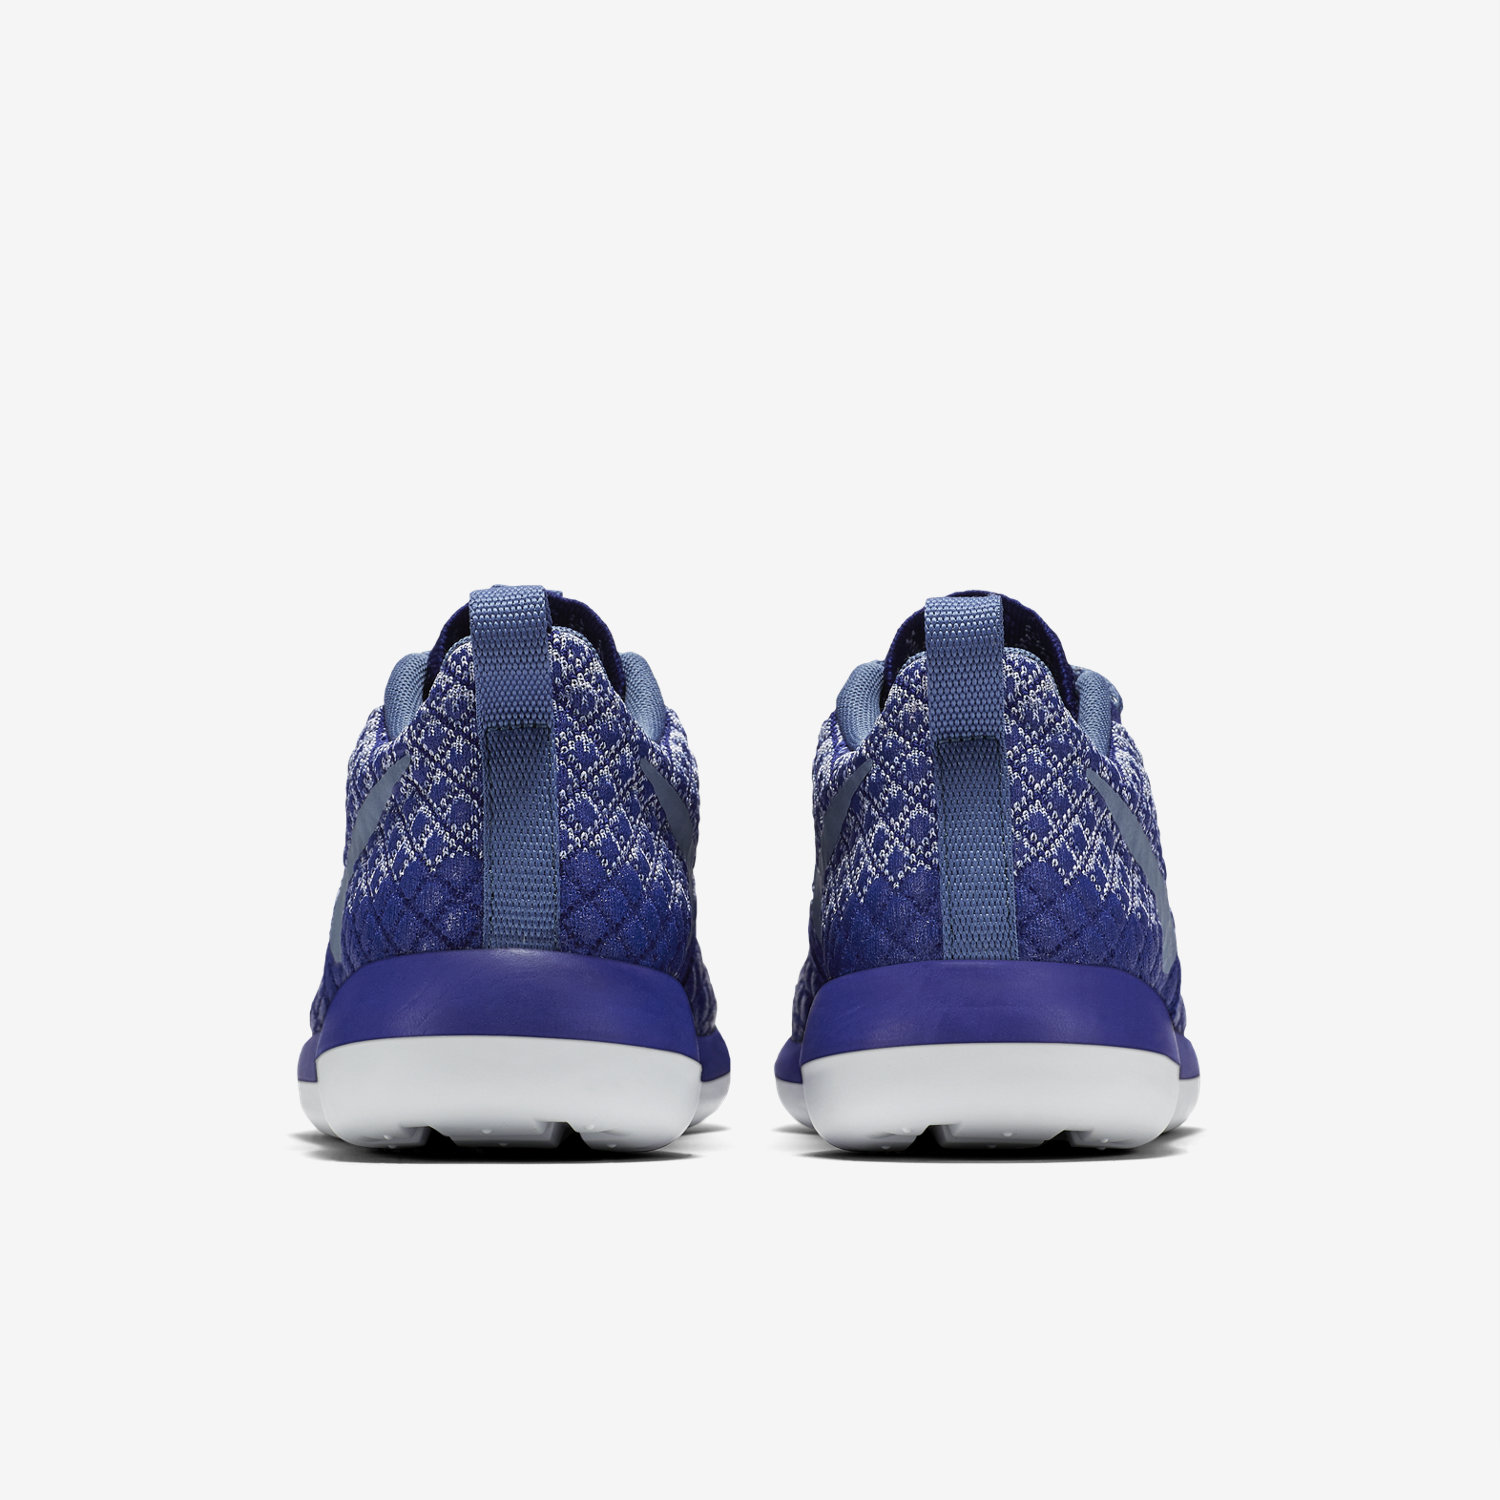 nike roshe two flyknit cheap, Nike Air Max Structure Triax